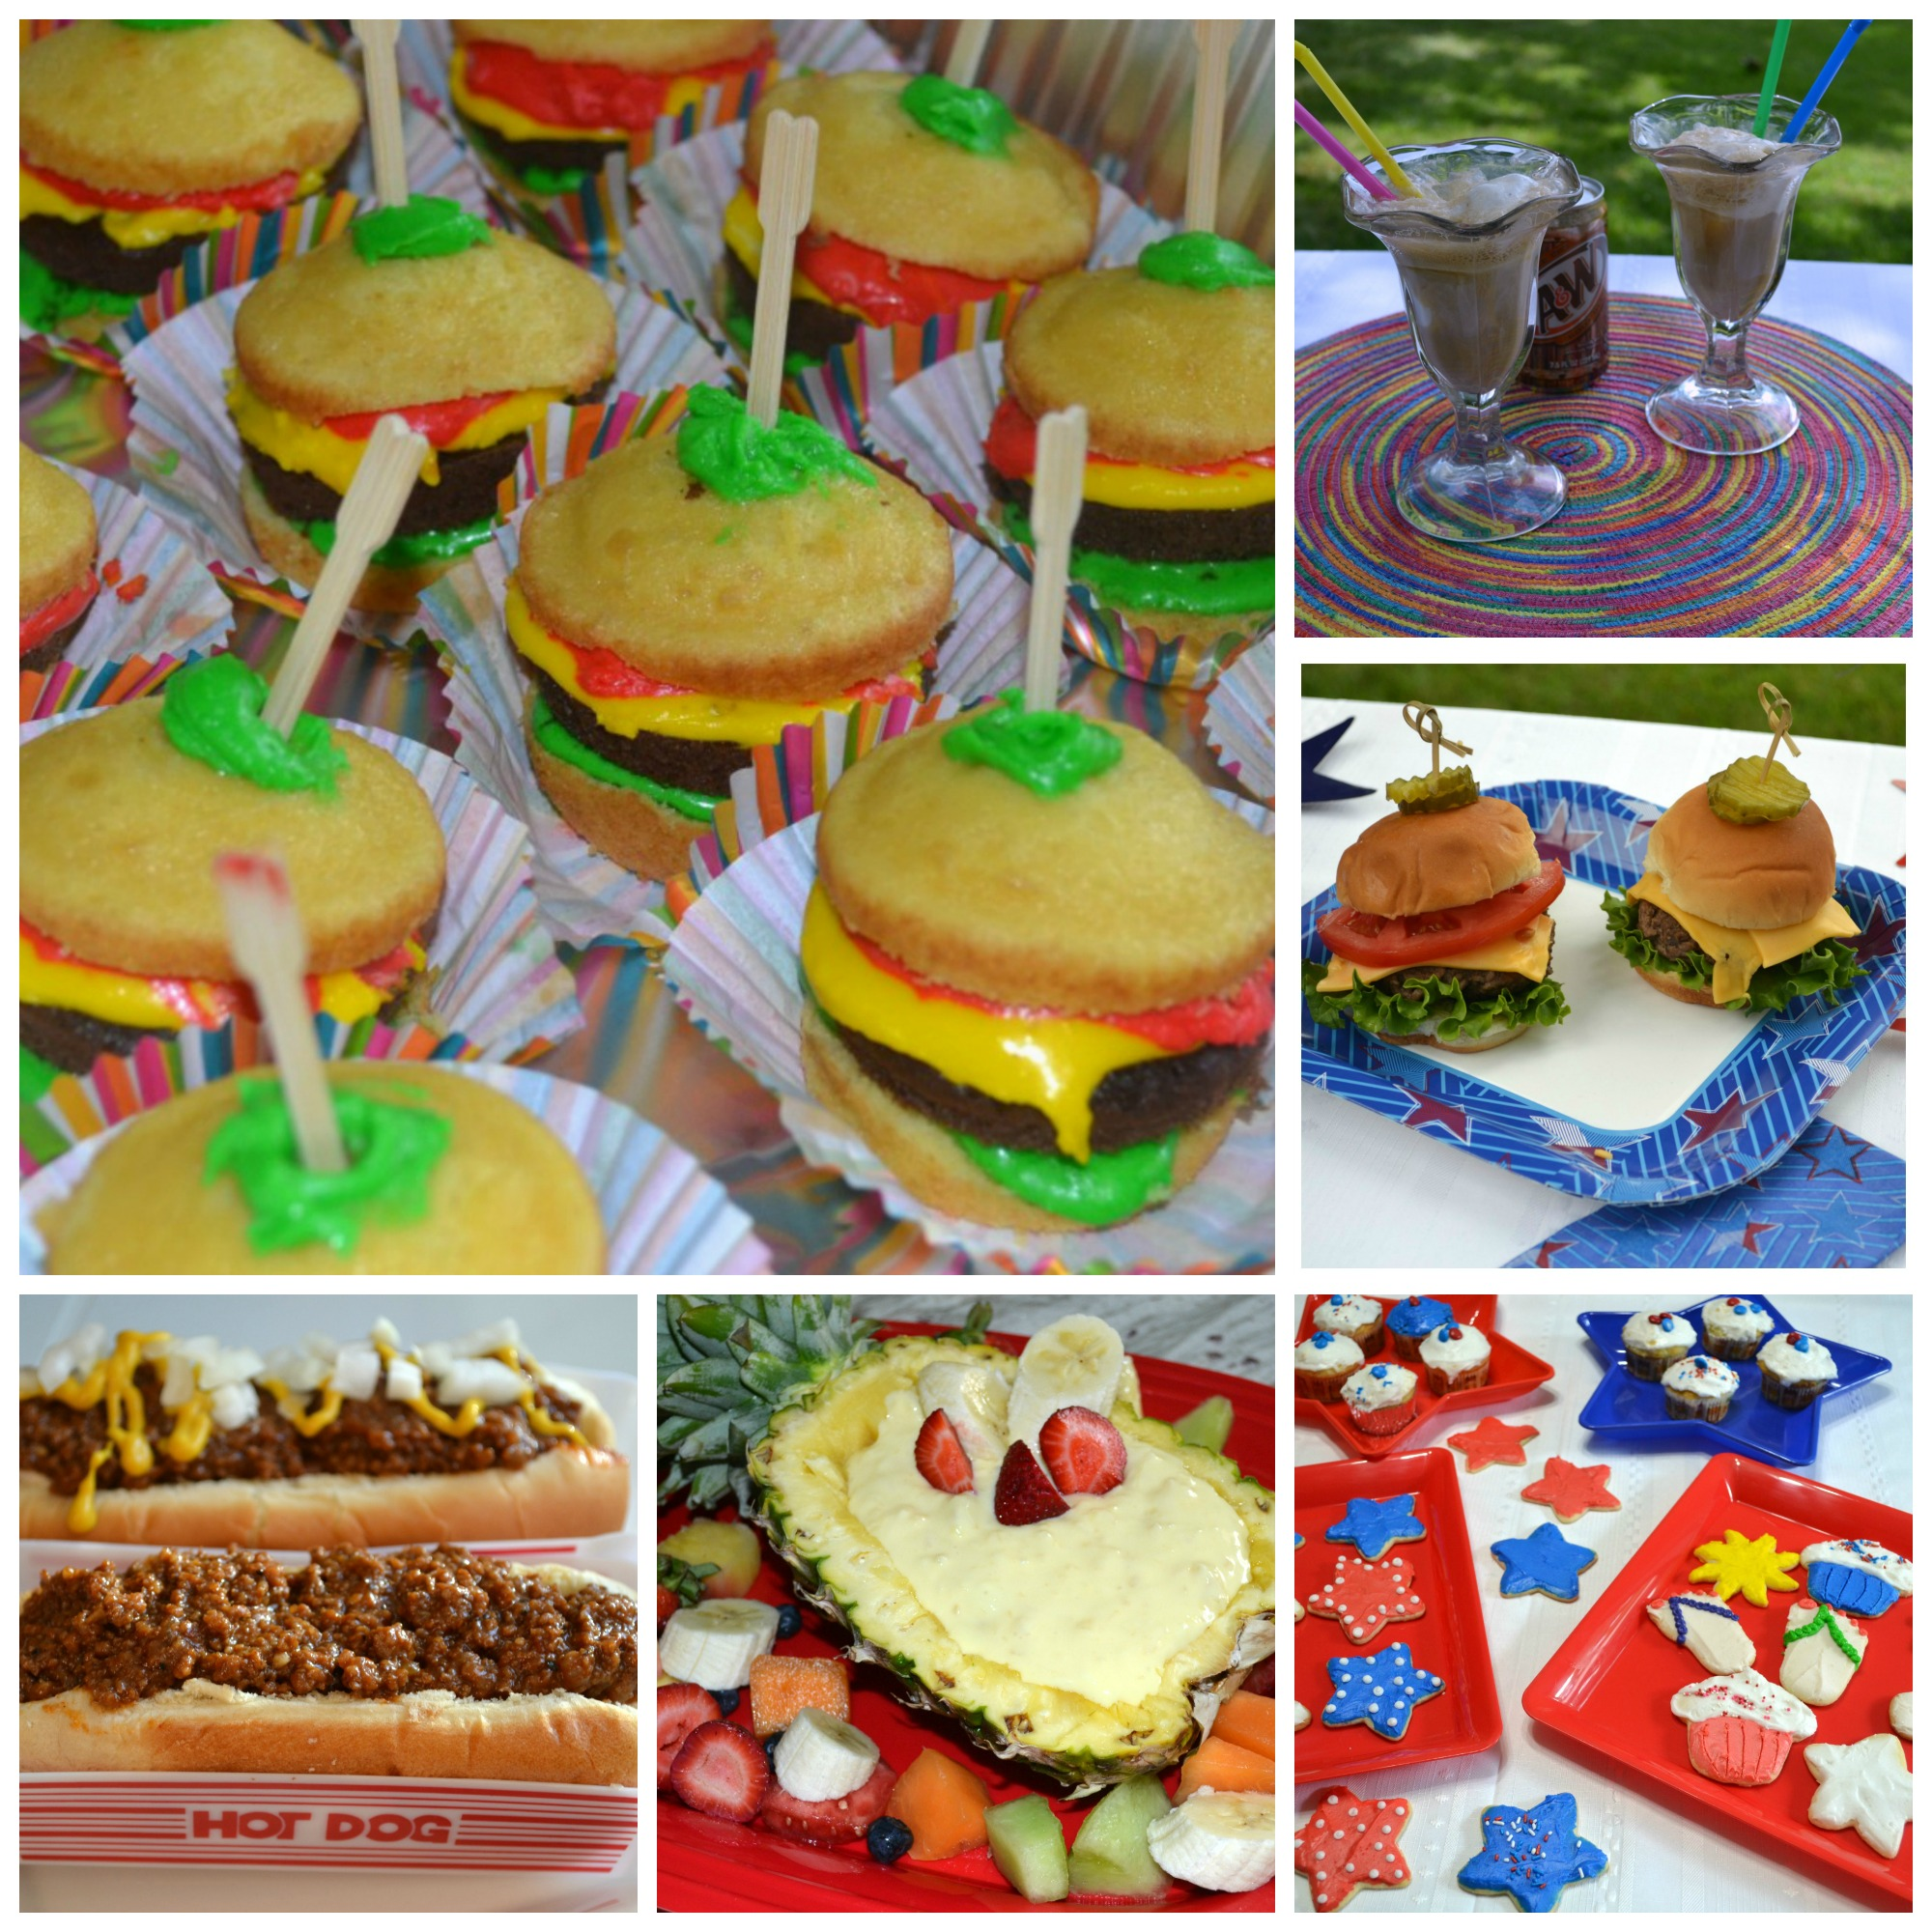 A collection of fun foods kids like to eat at a cook-out. Straight from the grandkids!